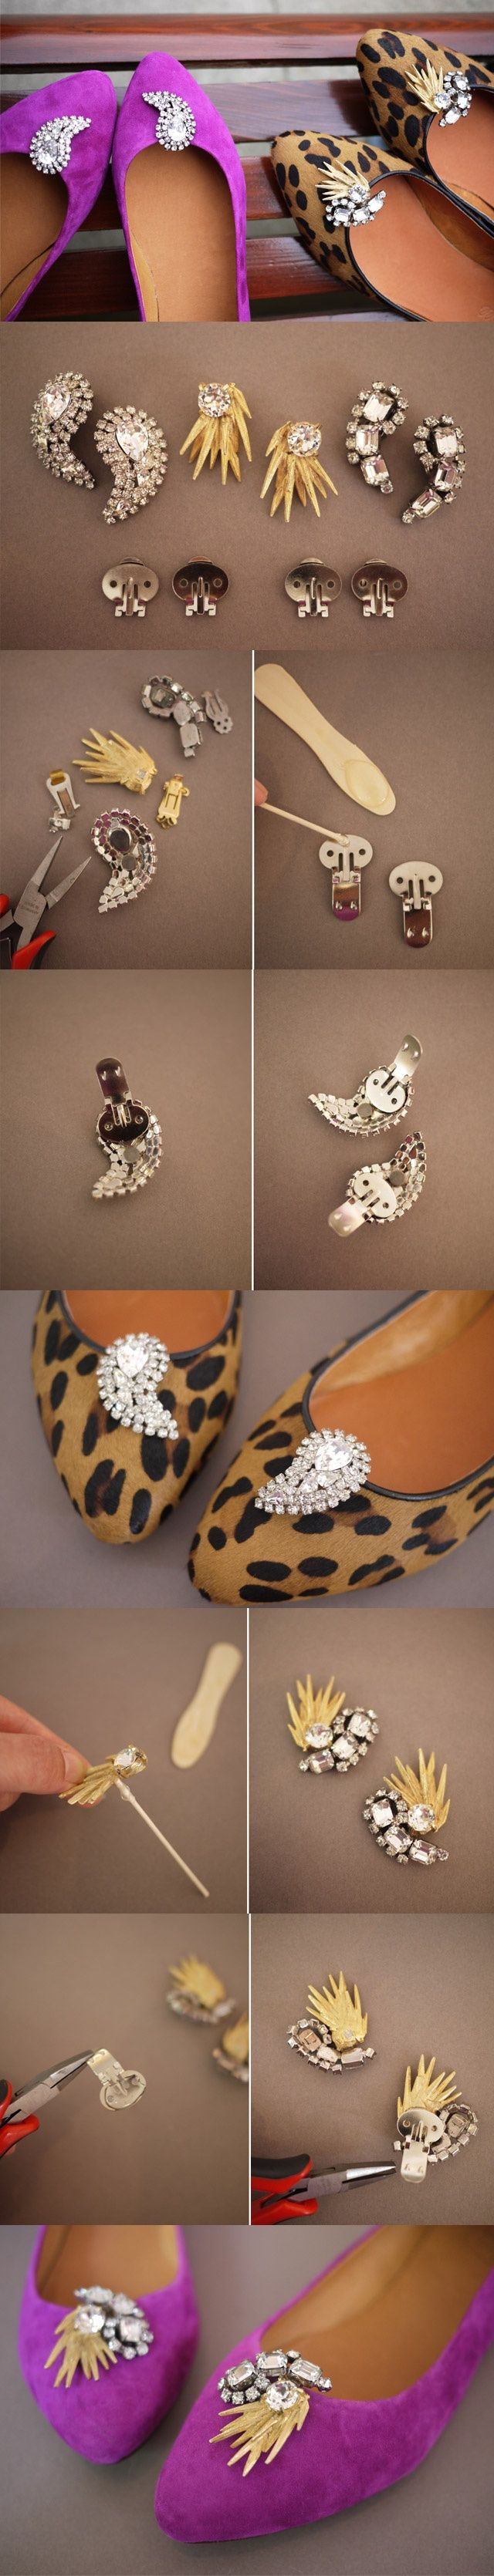 .DIY shoe clips